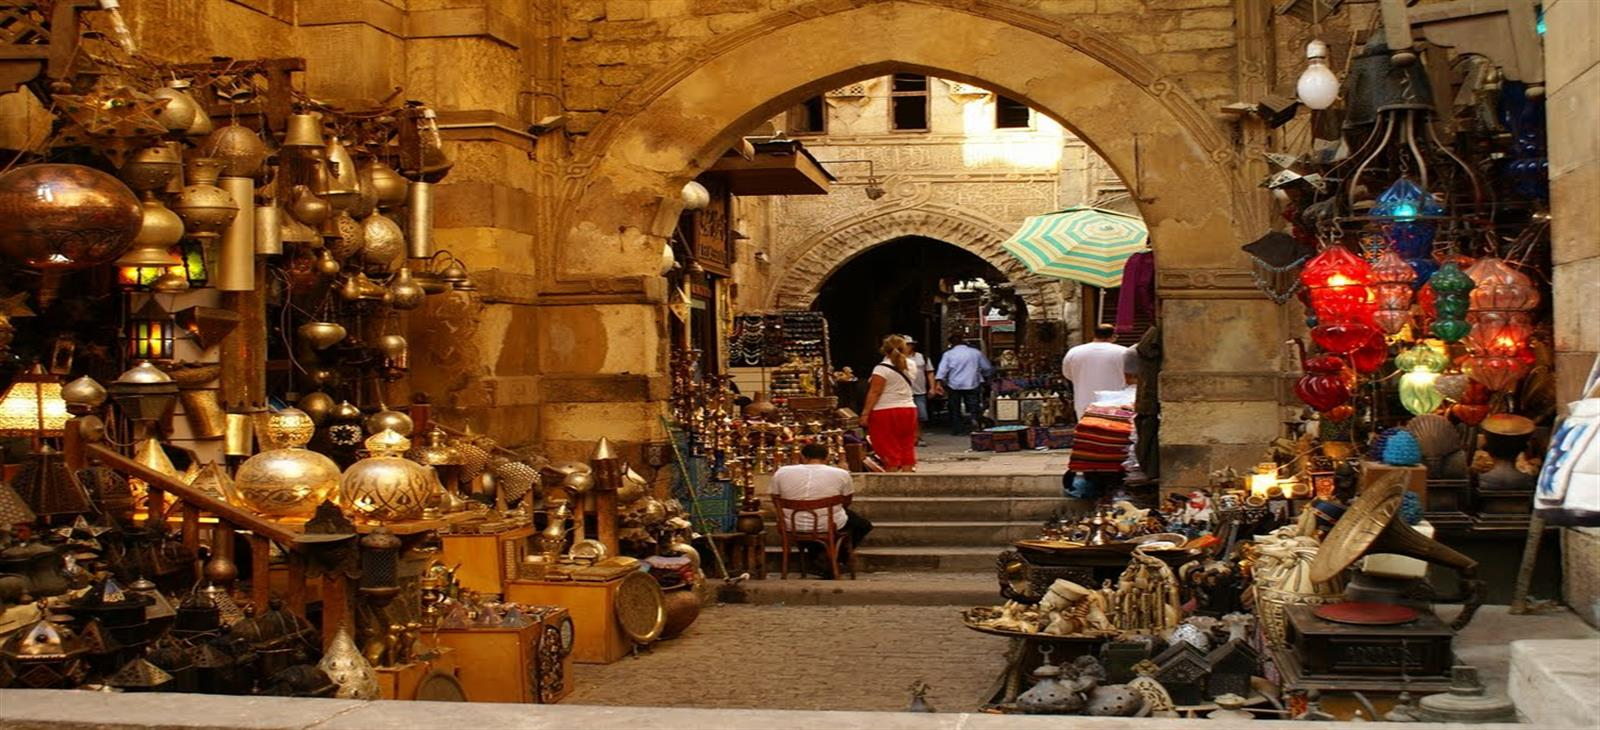 Khan El Khalili Bazaar at Cairo